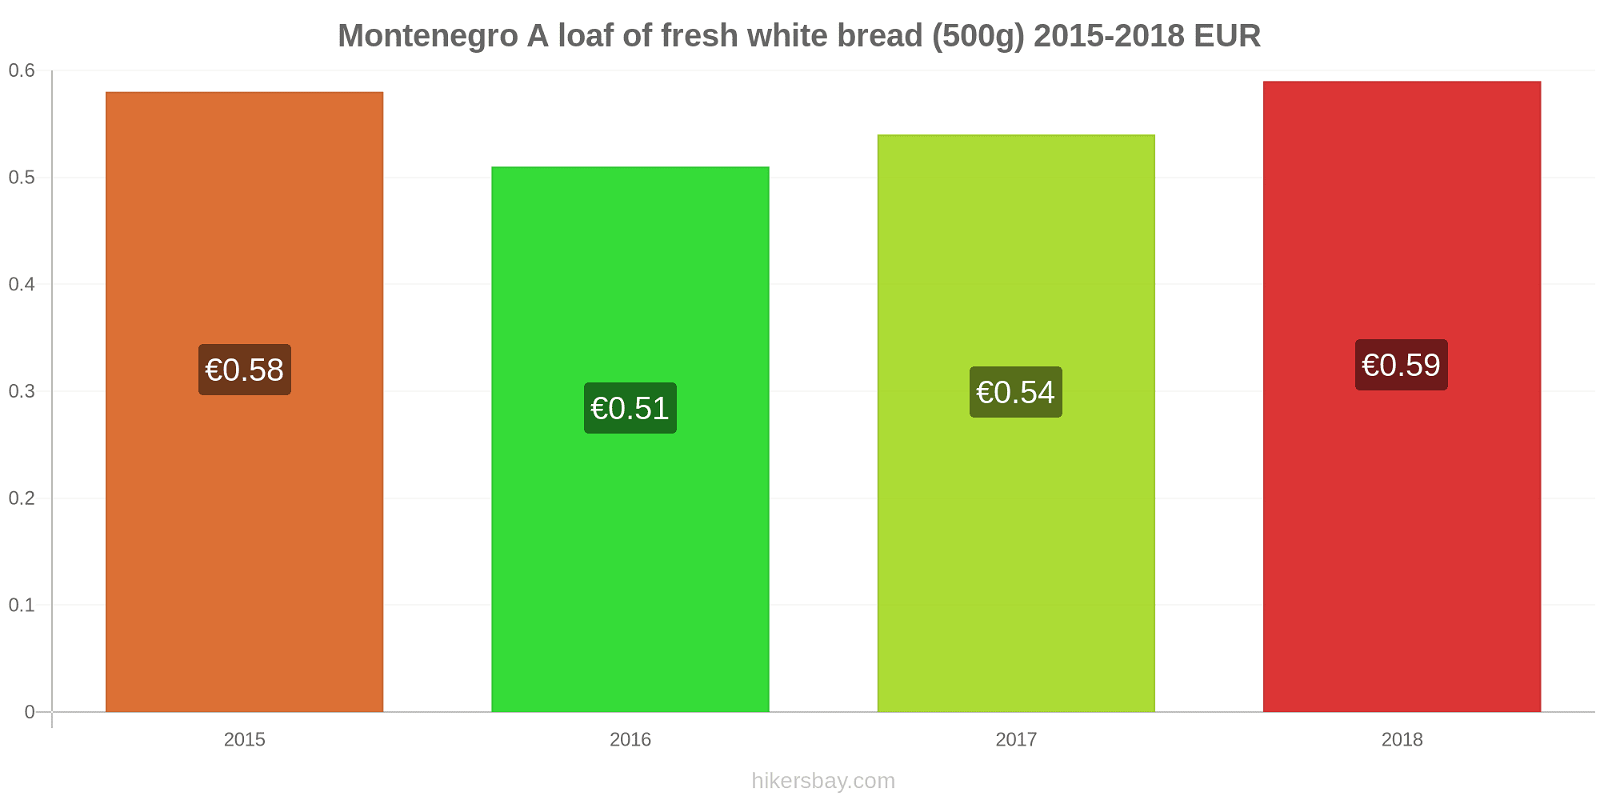 Montenegro price changes A loaf of fresh white bread (500g) hikersbay.com